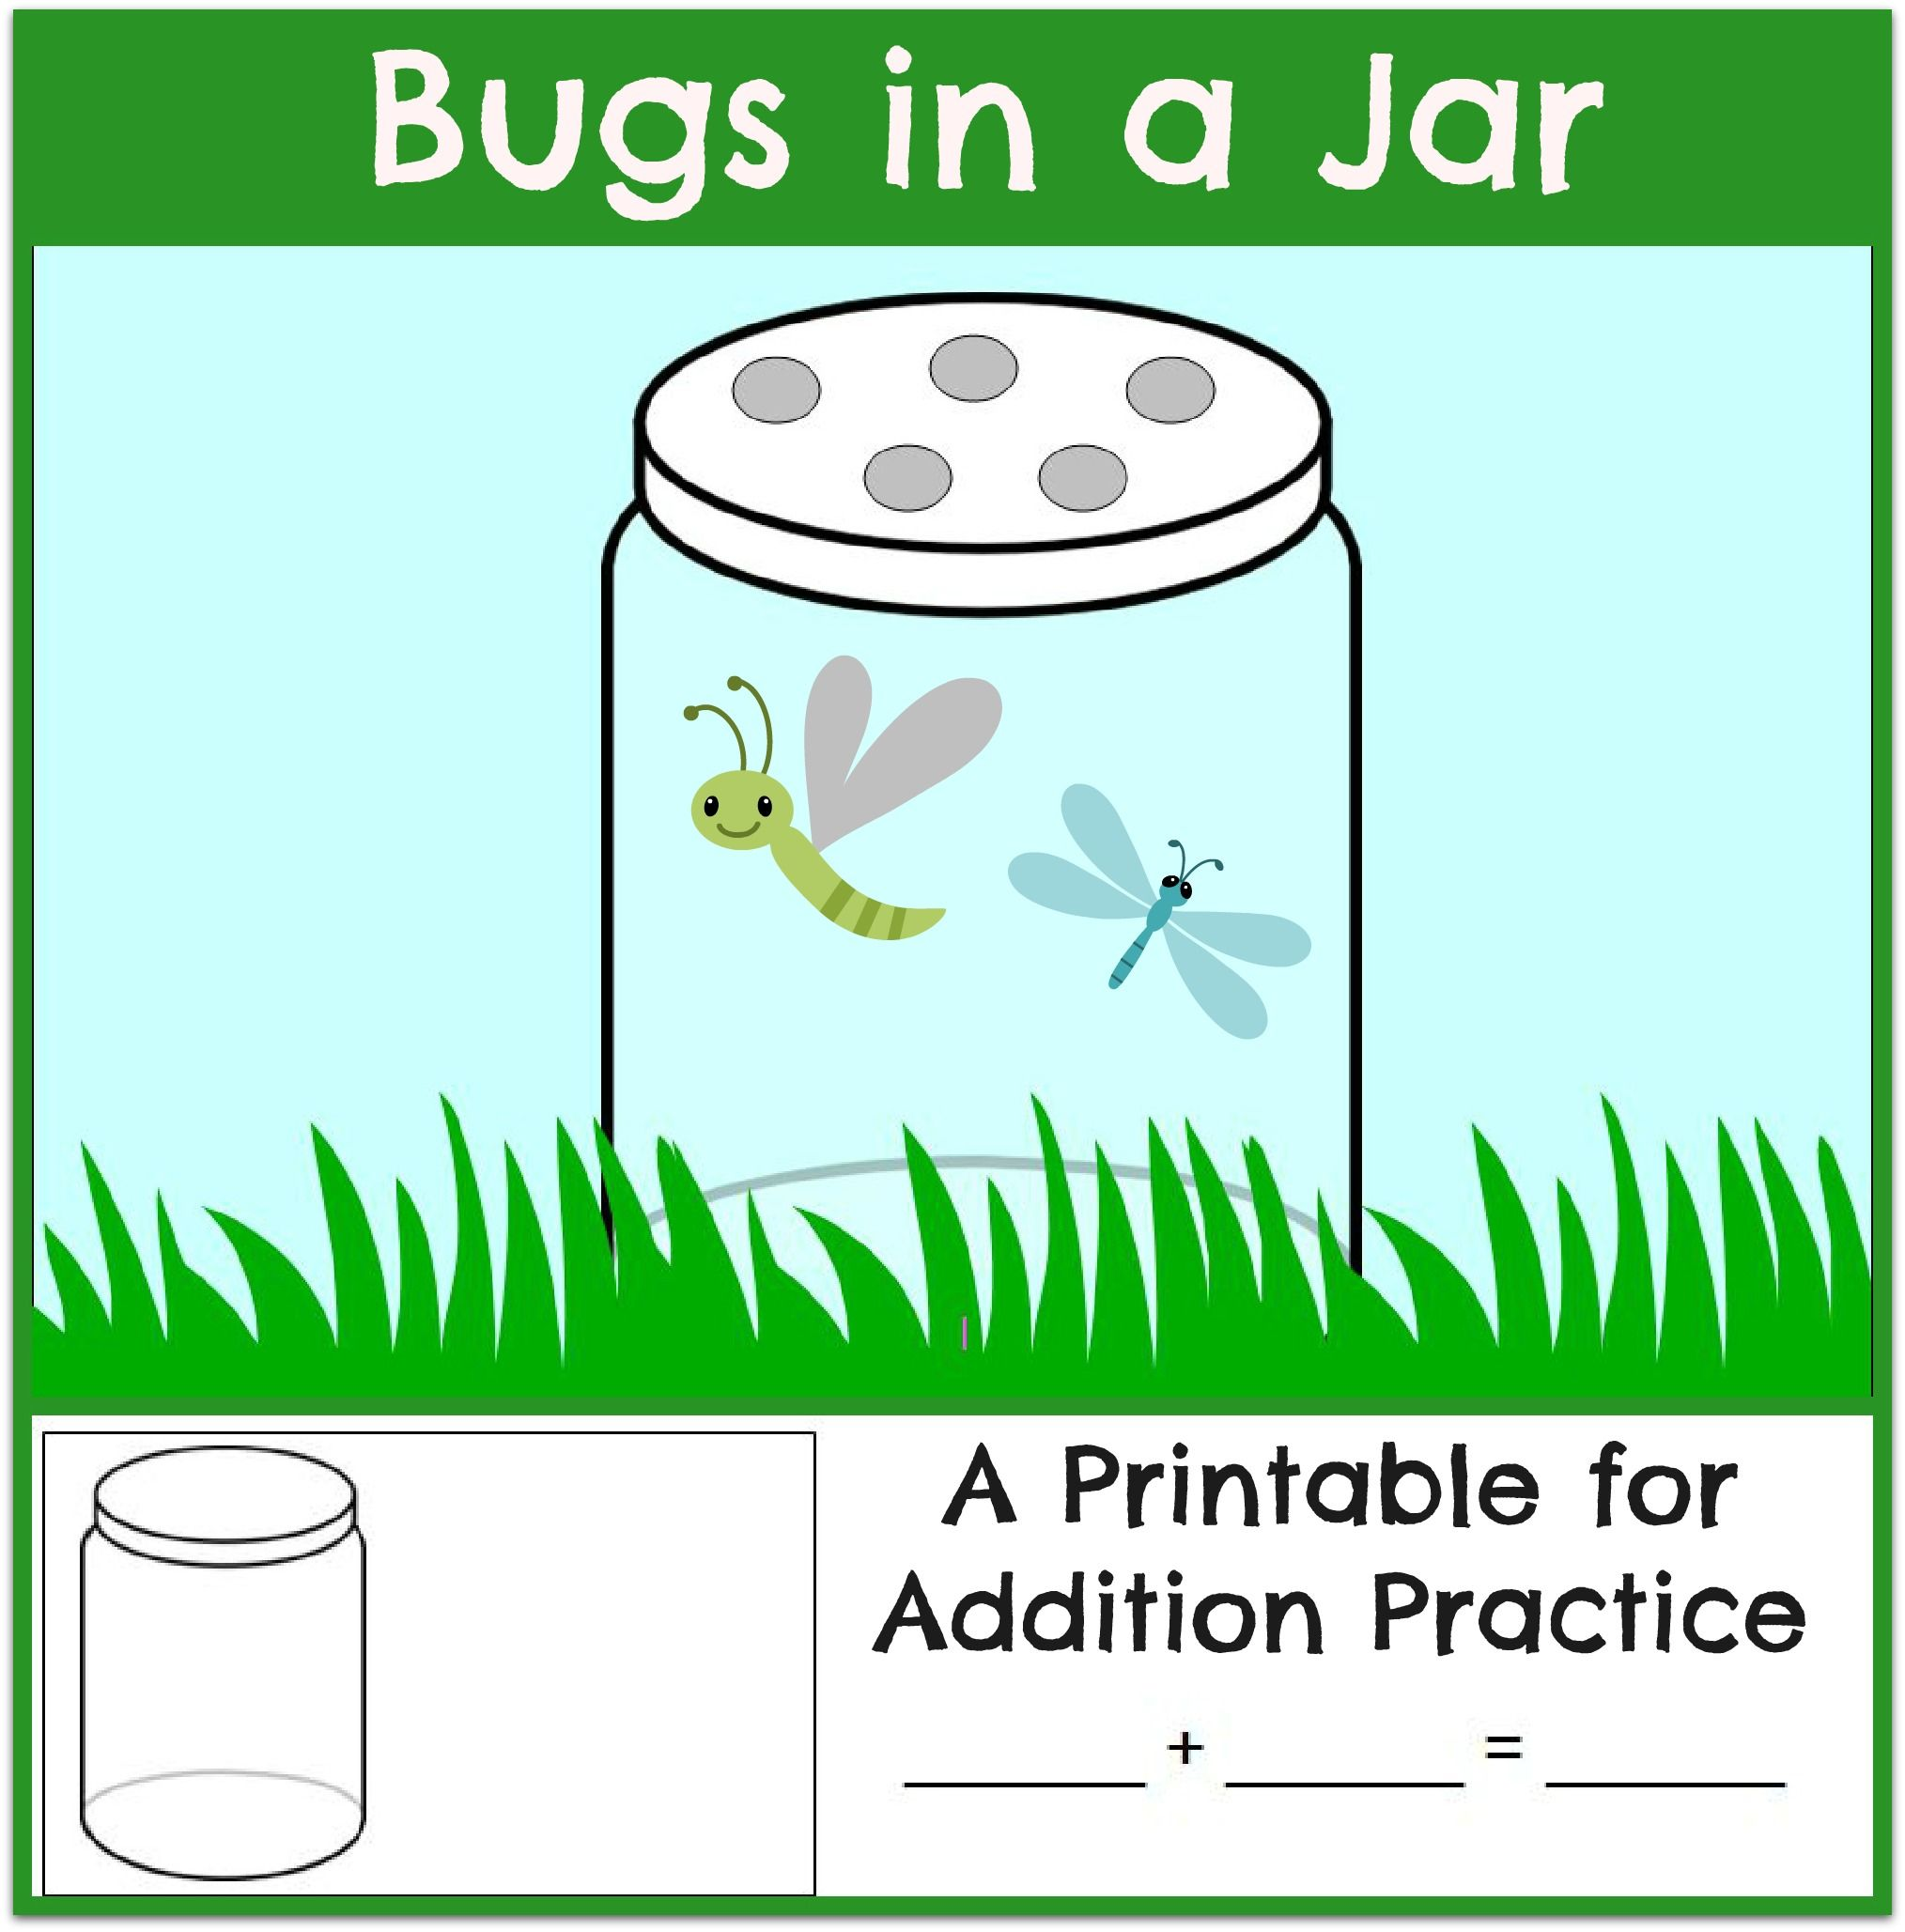 Fun Addition Practice Bugs In A Jar